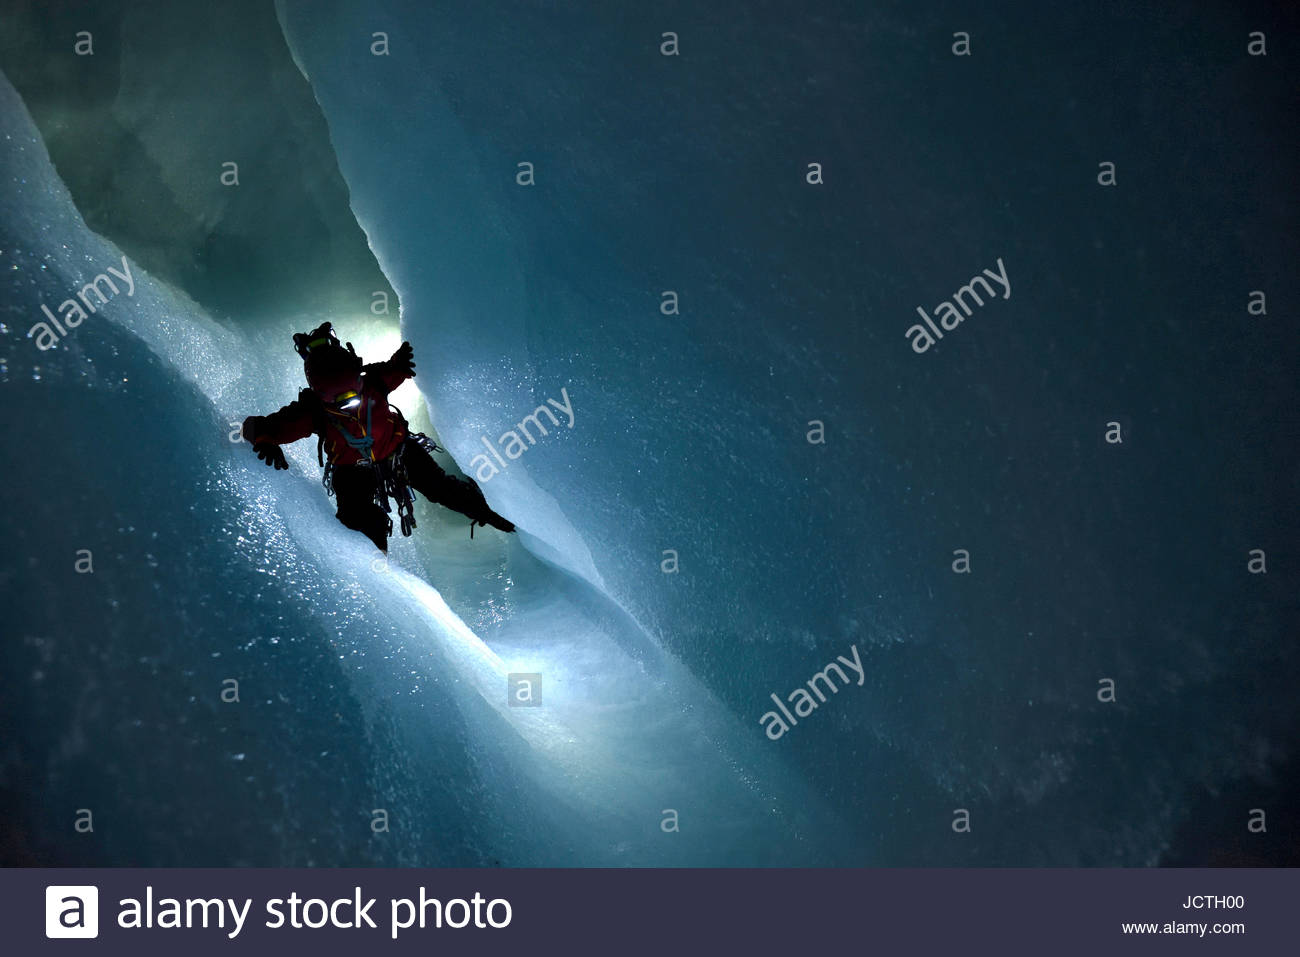 British cave explorer Josh Bratchley traverses around a pool of ice cold water in a narrow ection of passage-way - Stock Image